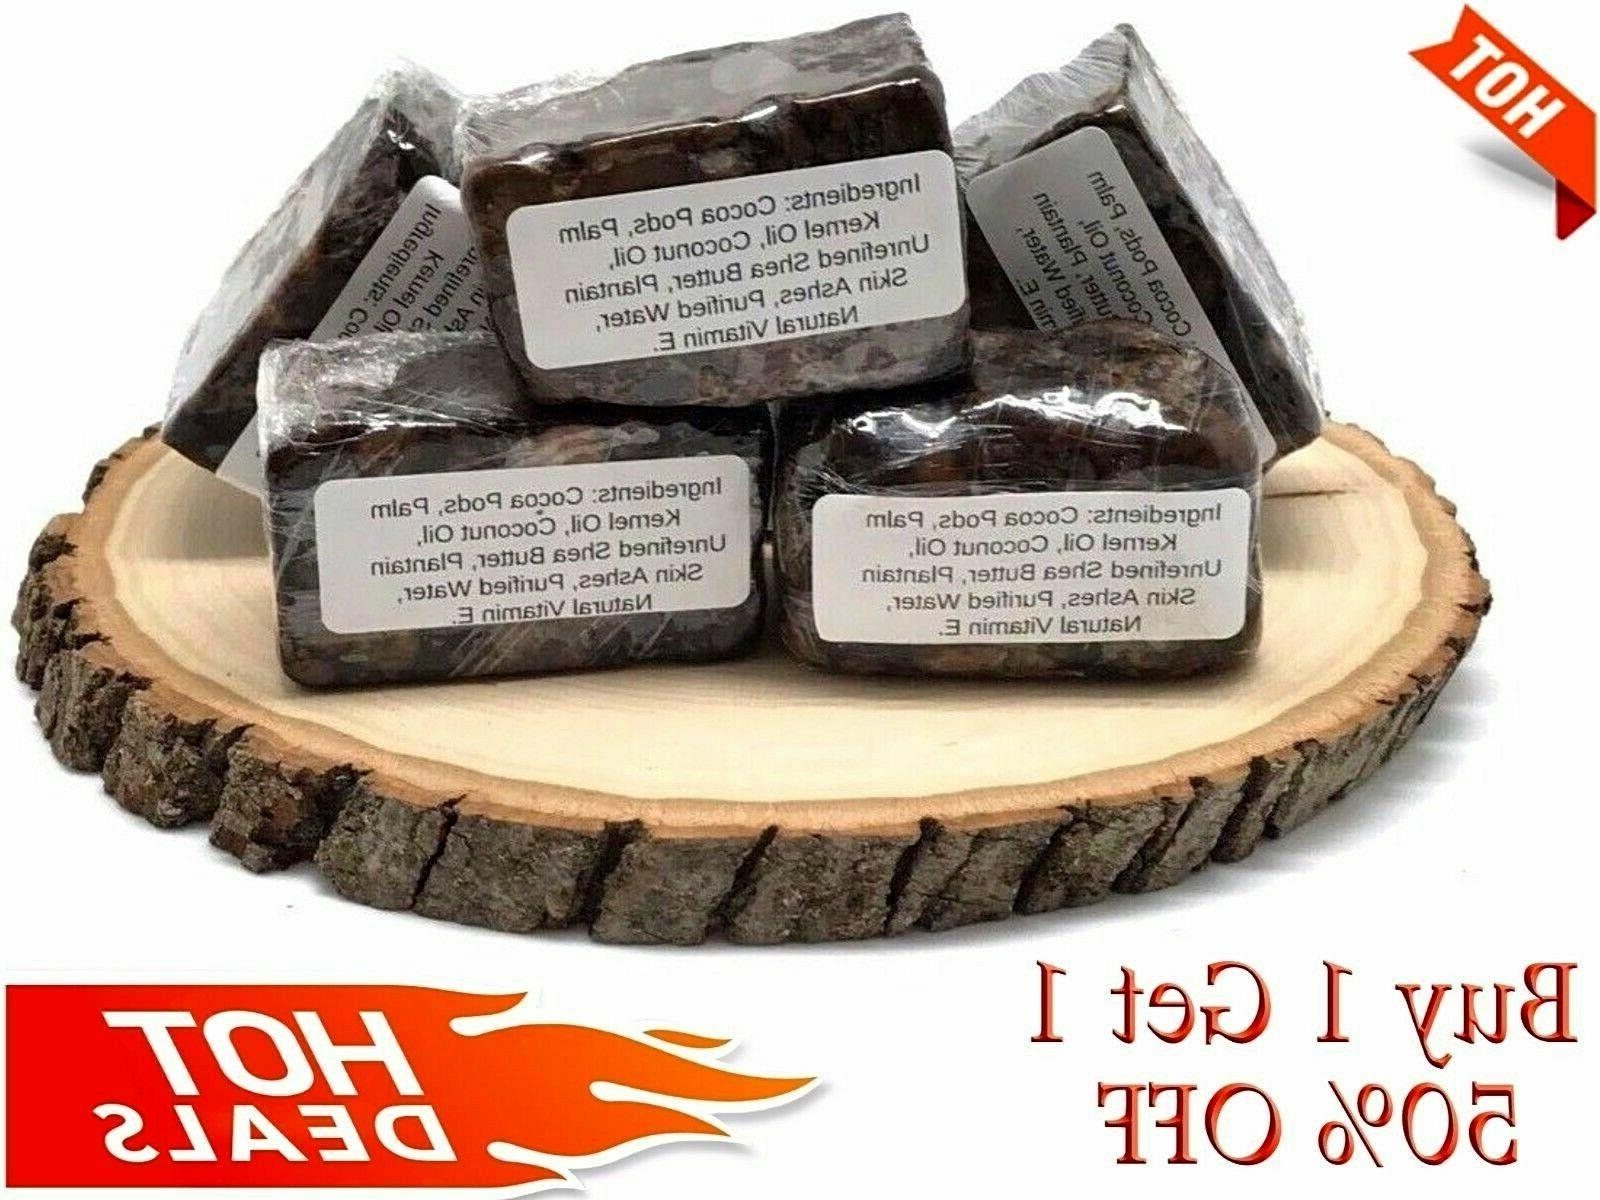 Raw Organic lb. 16 oz. Pure Imported From